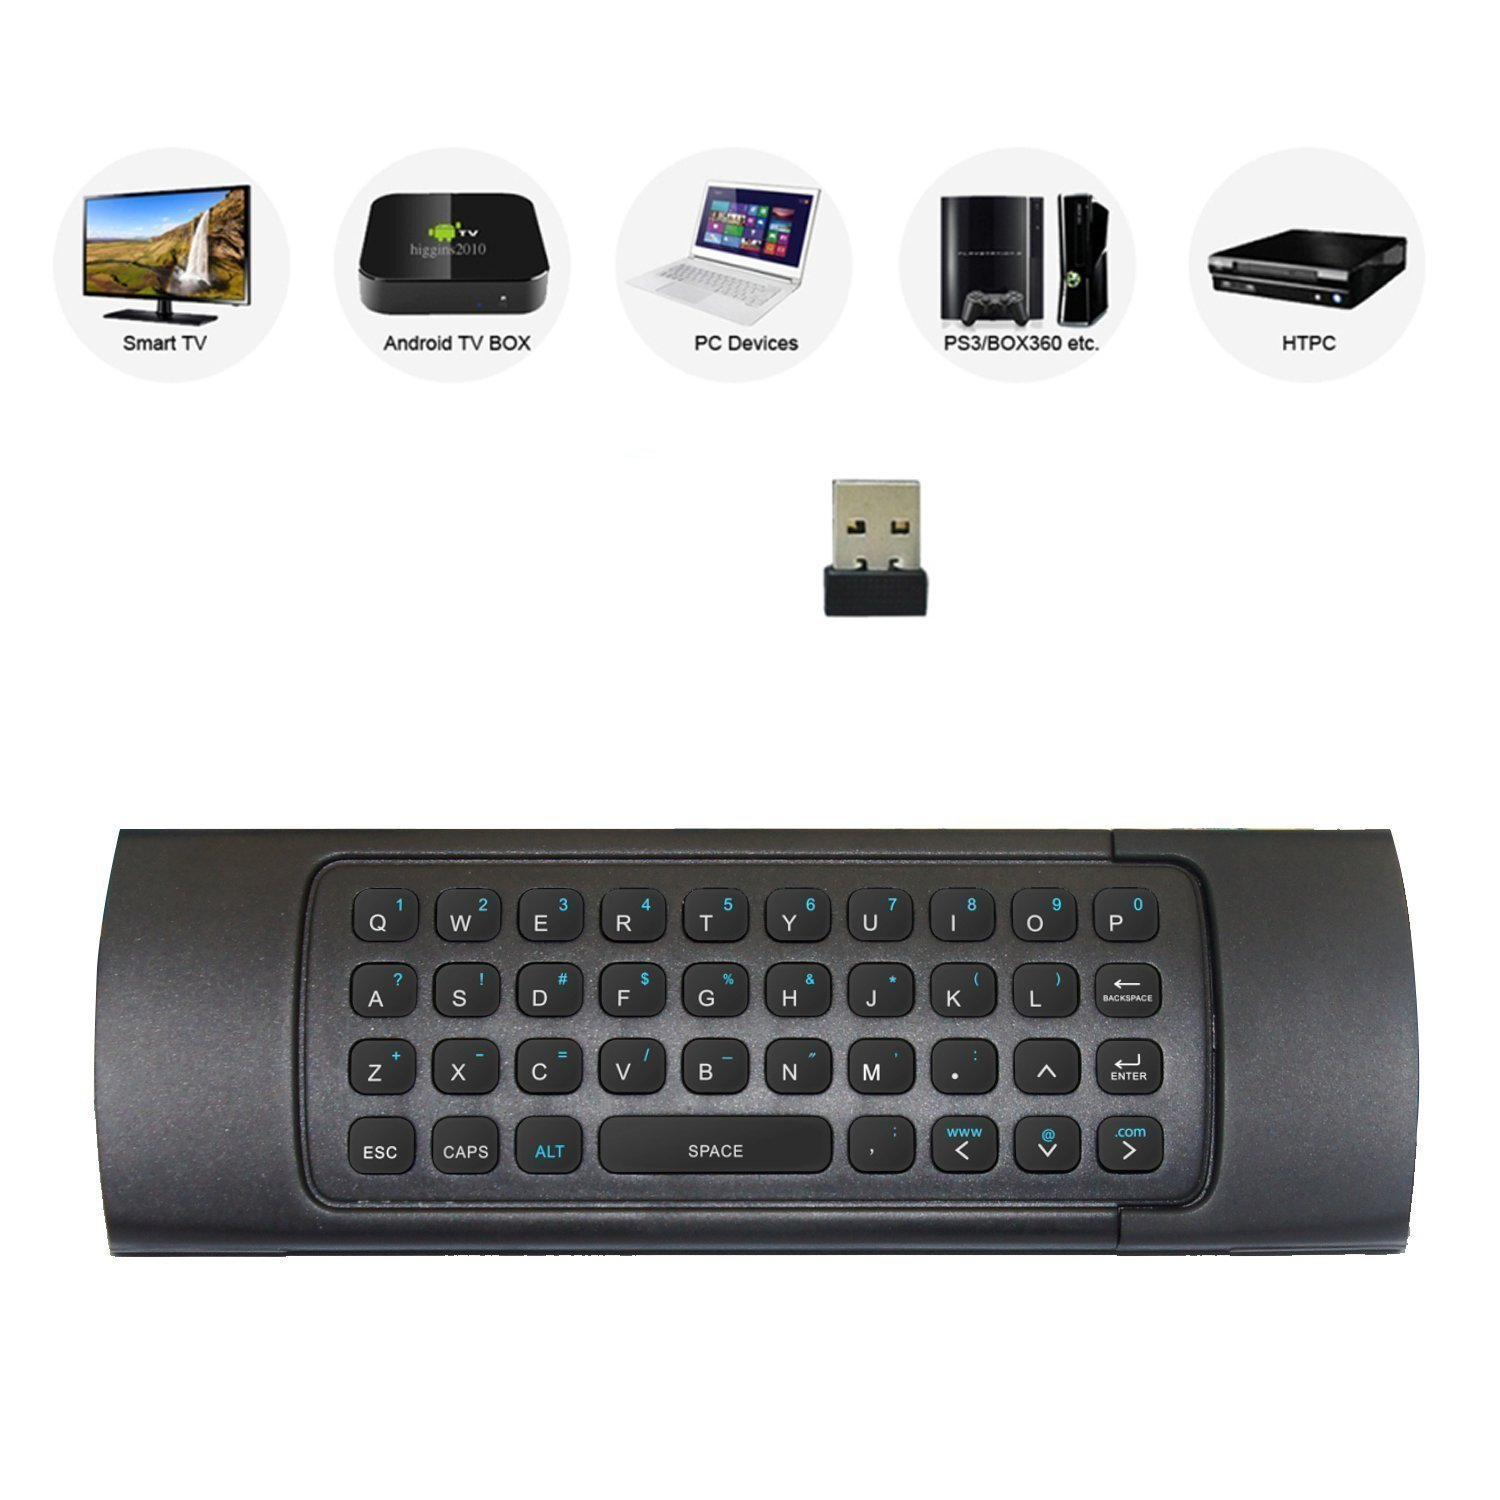 Rii MX3 Multifunction 2.4G Fly Mouse Mini Wireless Keyboard & Infrared Remote Control & 3-Gyro + 3-Gsensor for Google Android TV/Box, IPTV, HTPC, Windows, MAC OS, PS3 by Rii (Image #2)